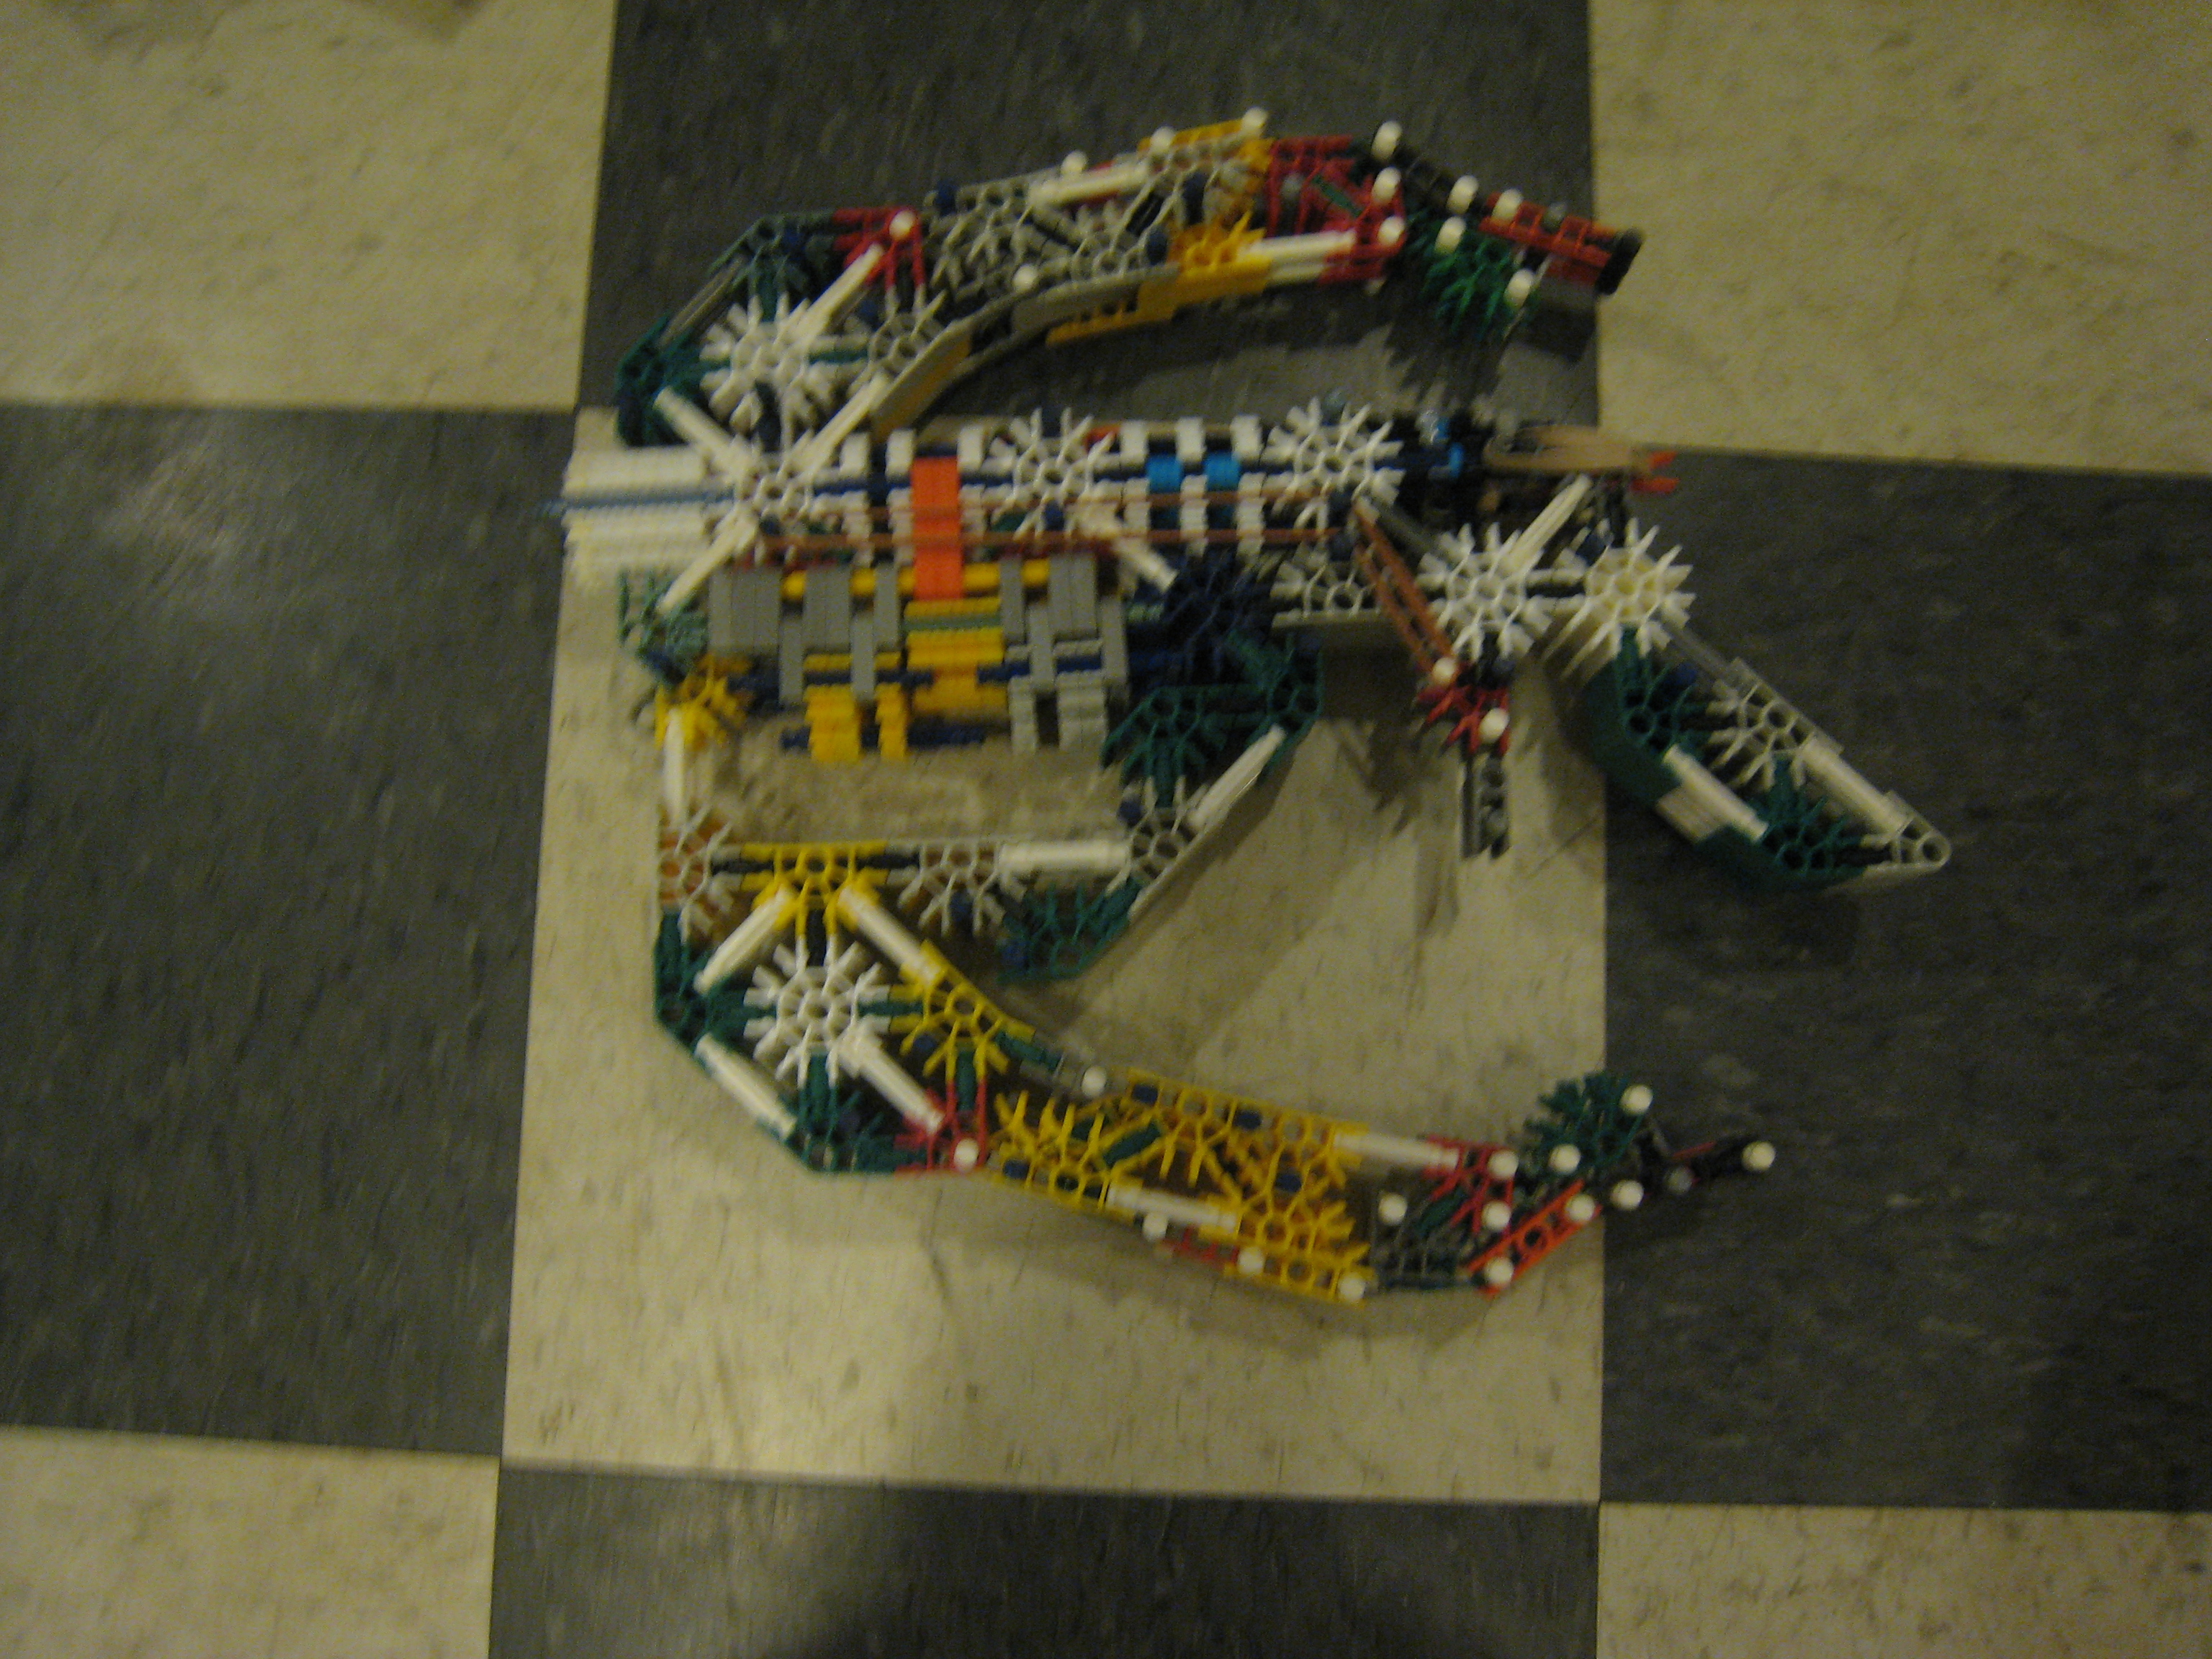 Picture of Knex Torque Bow